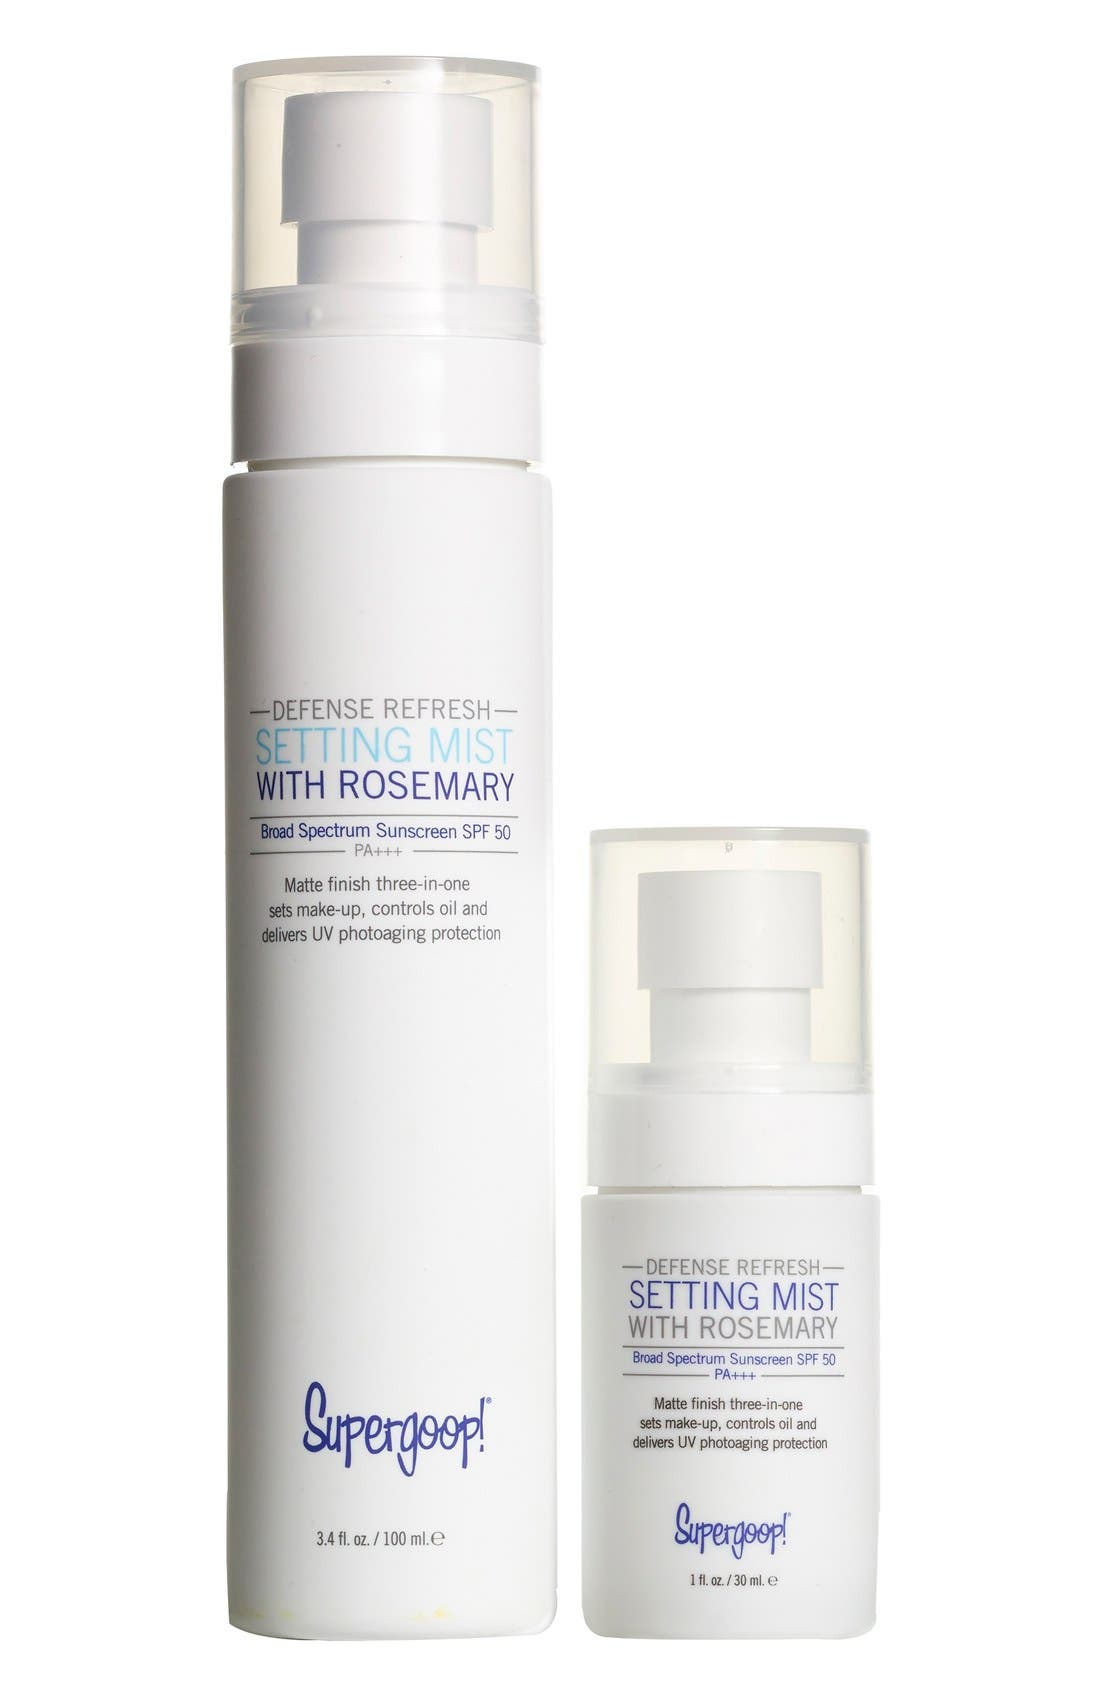 Supergoop!® Defense Refresh Setting Mist SPF 50 Home & Away Duo (Limited Edition) (Nordstrom Exclusive) ($40 Value)